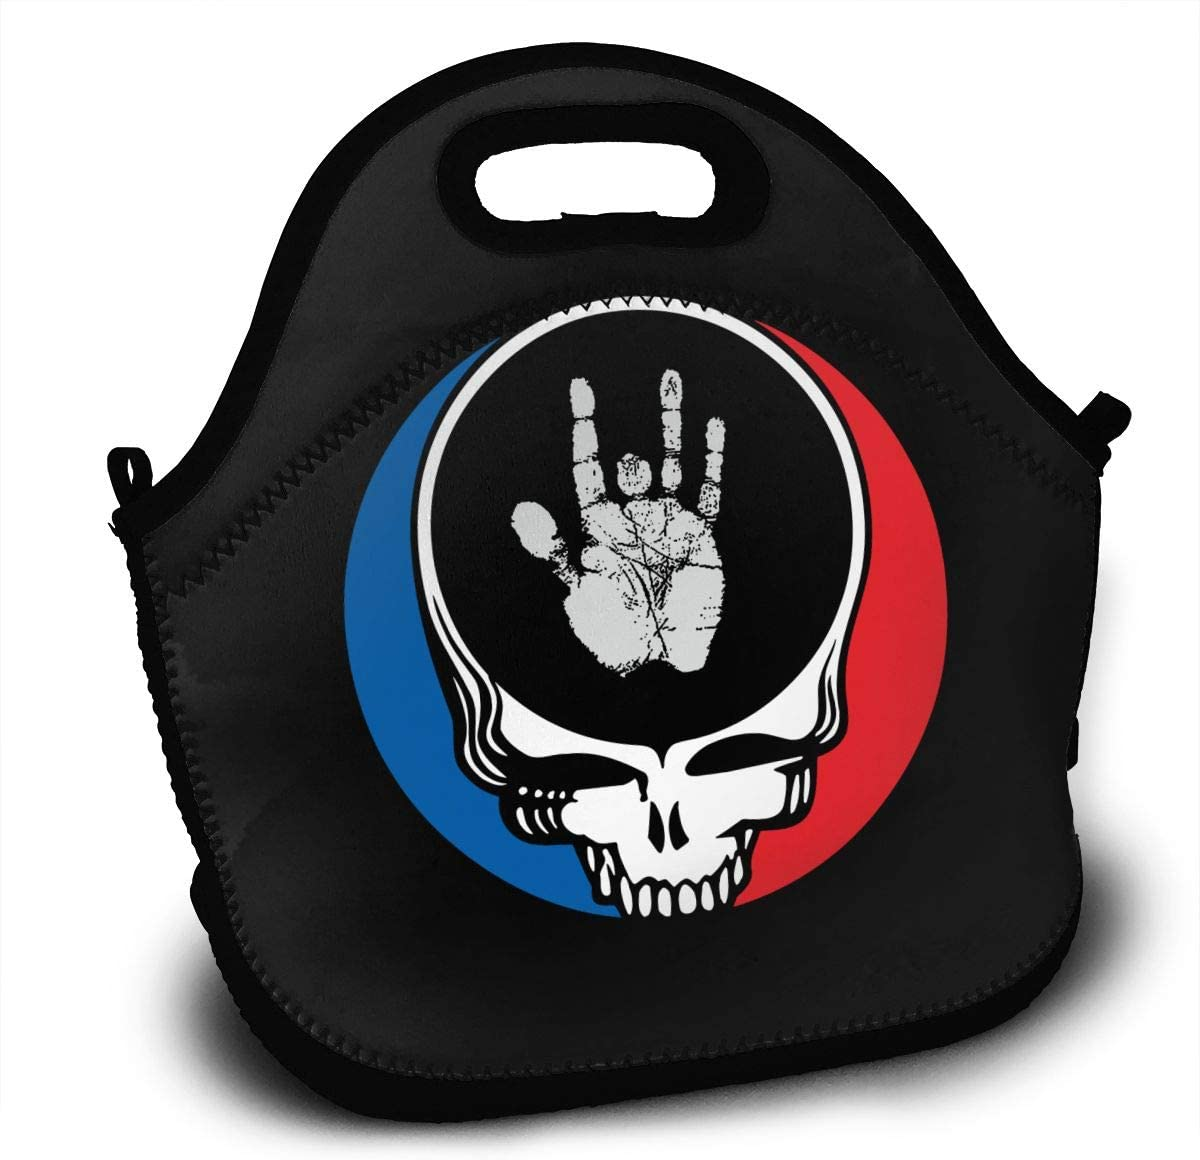 Grat-eful De-ad Jerry Hand Lunch Bag Lunch Box Thermal Insulated Lunch Pouch Picnic Bag for School Cross Body Backpack